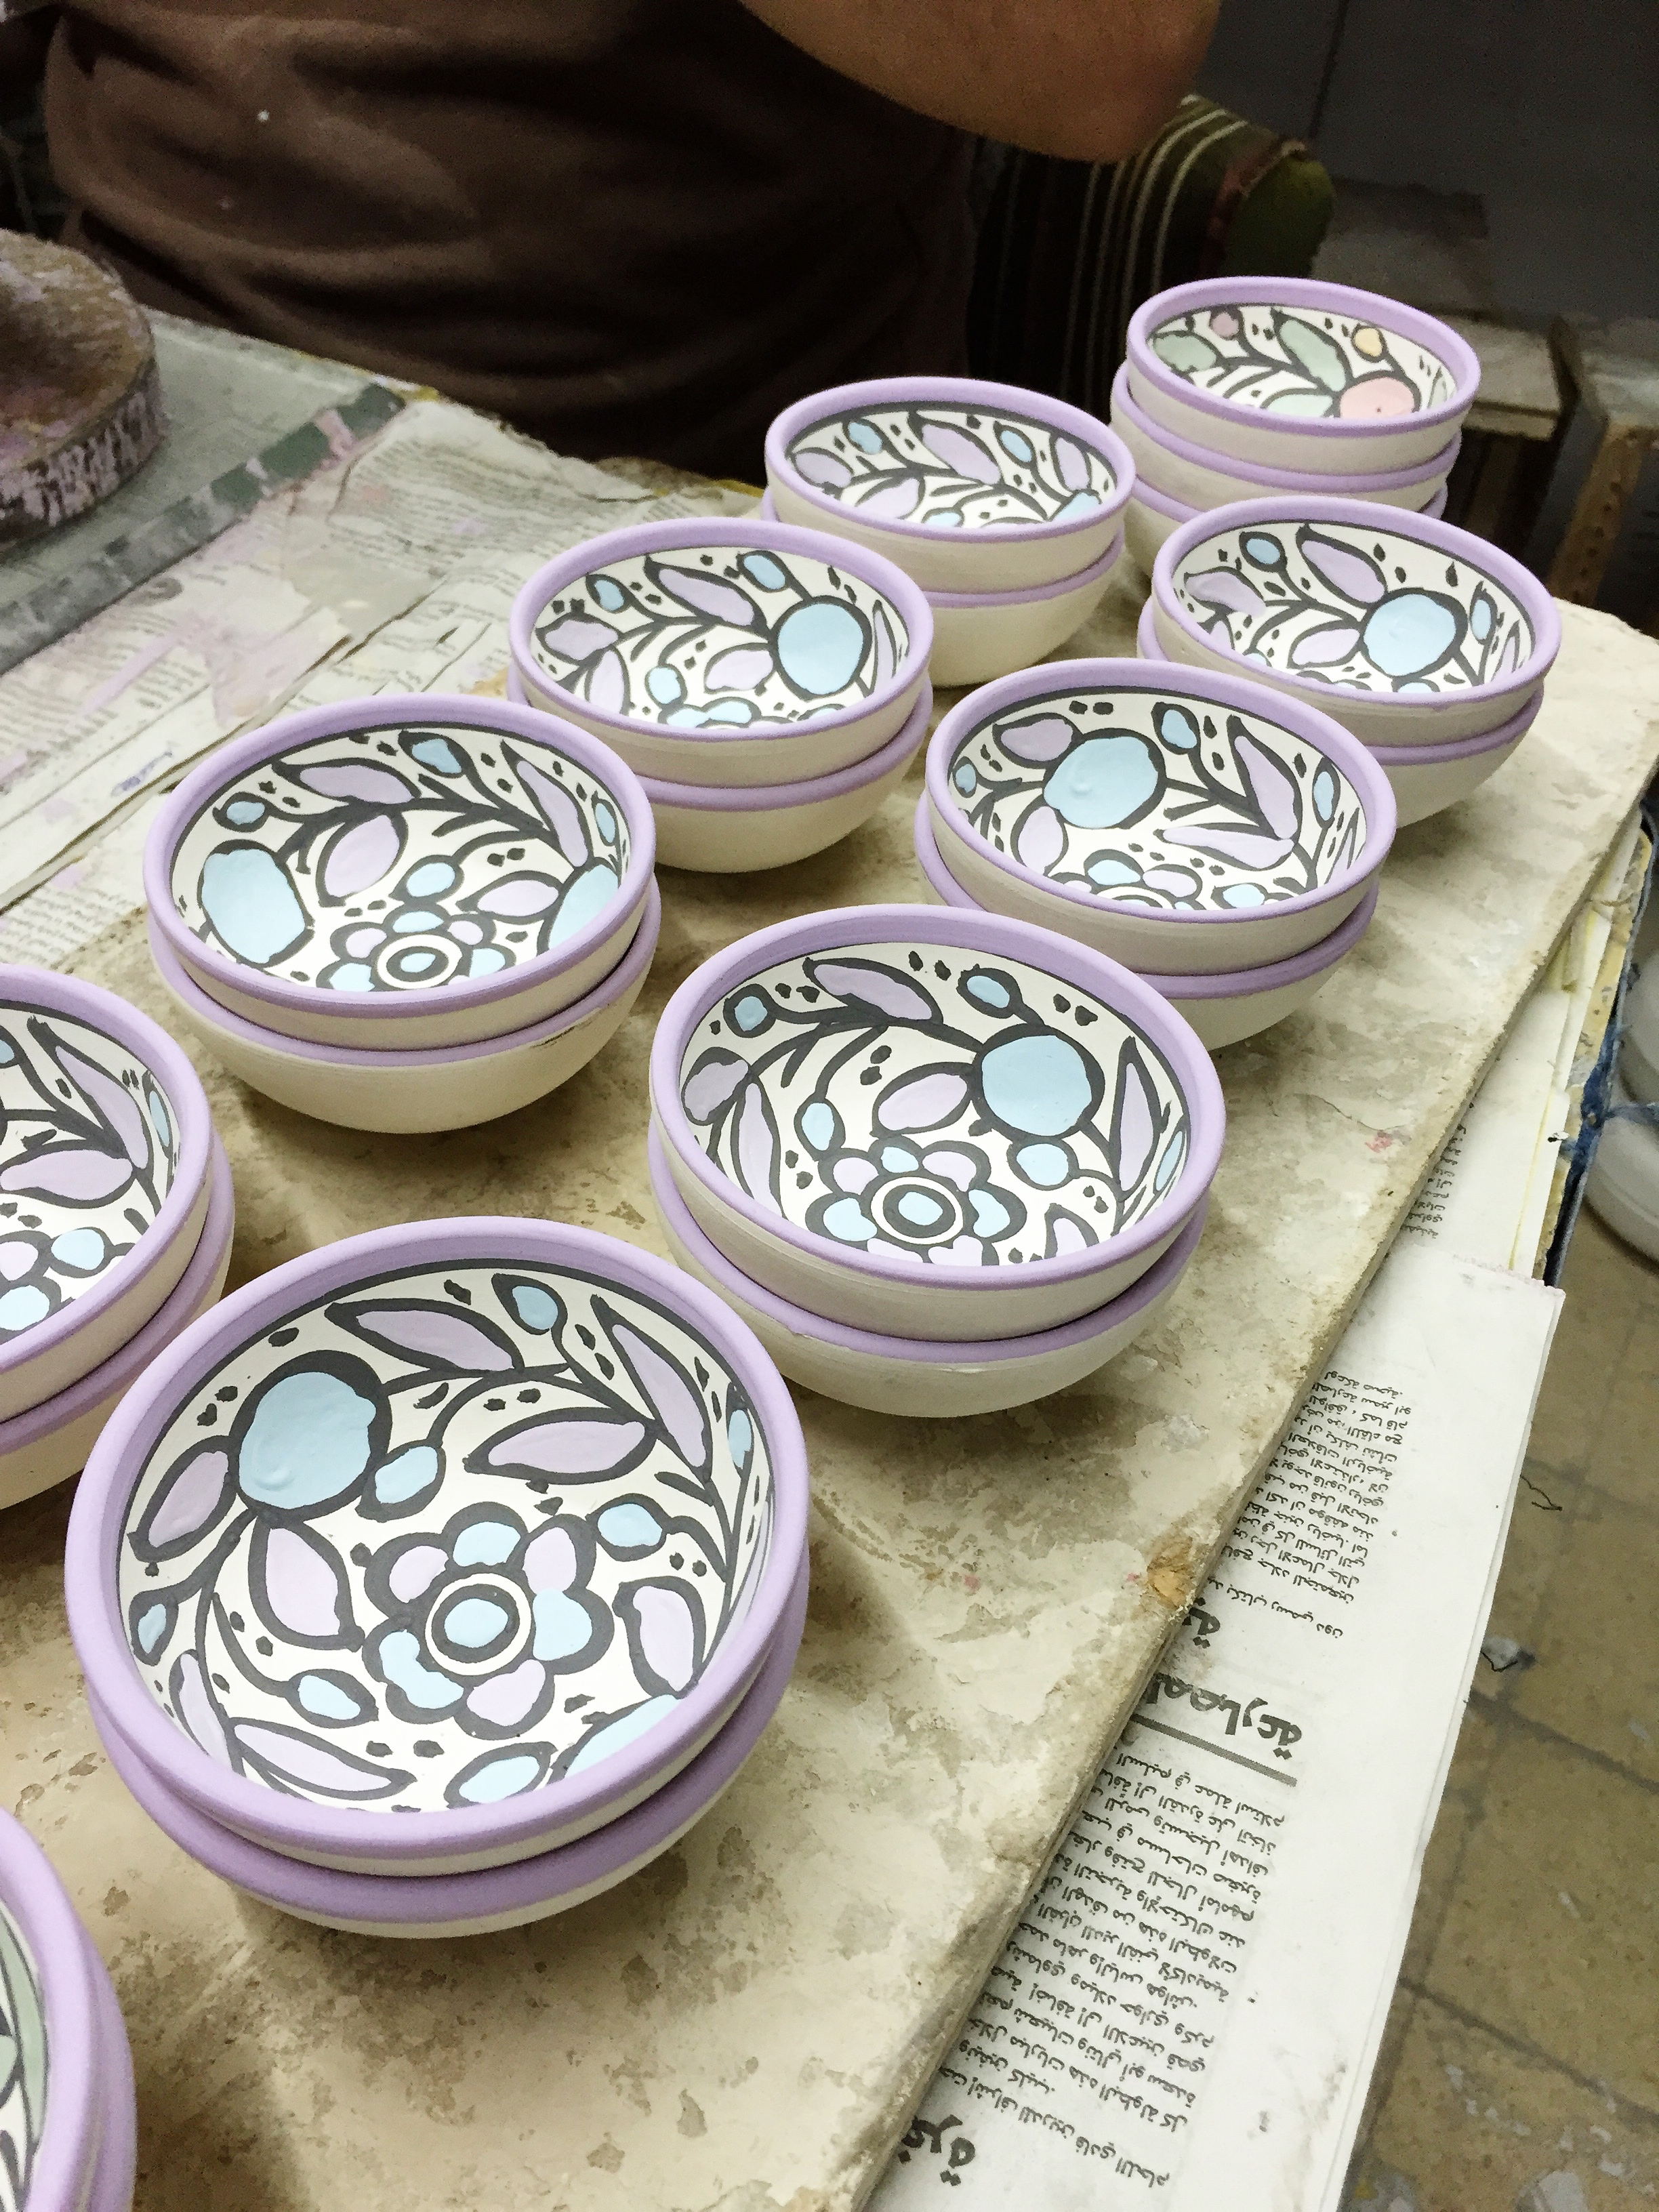 Some of the handmade pottery before being baked